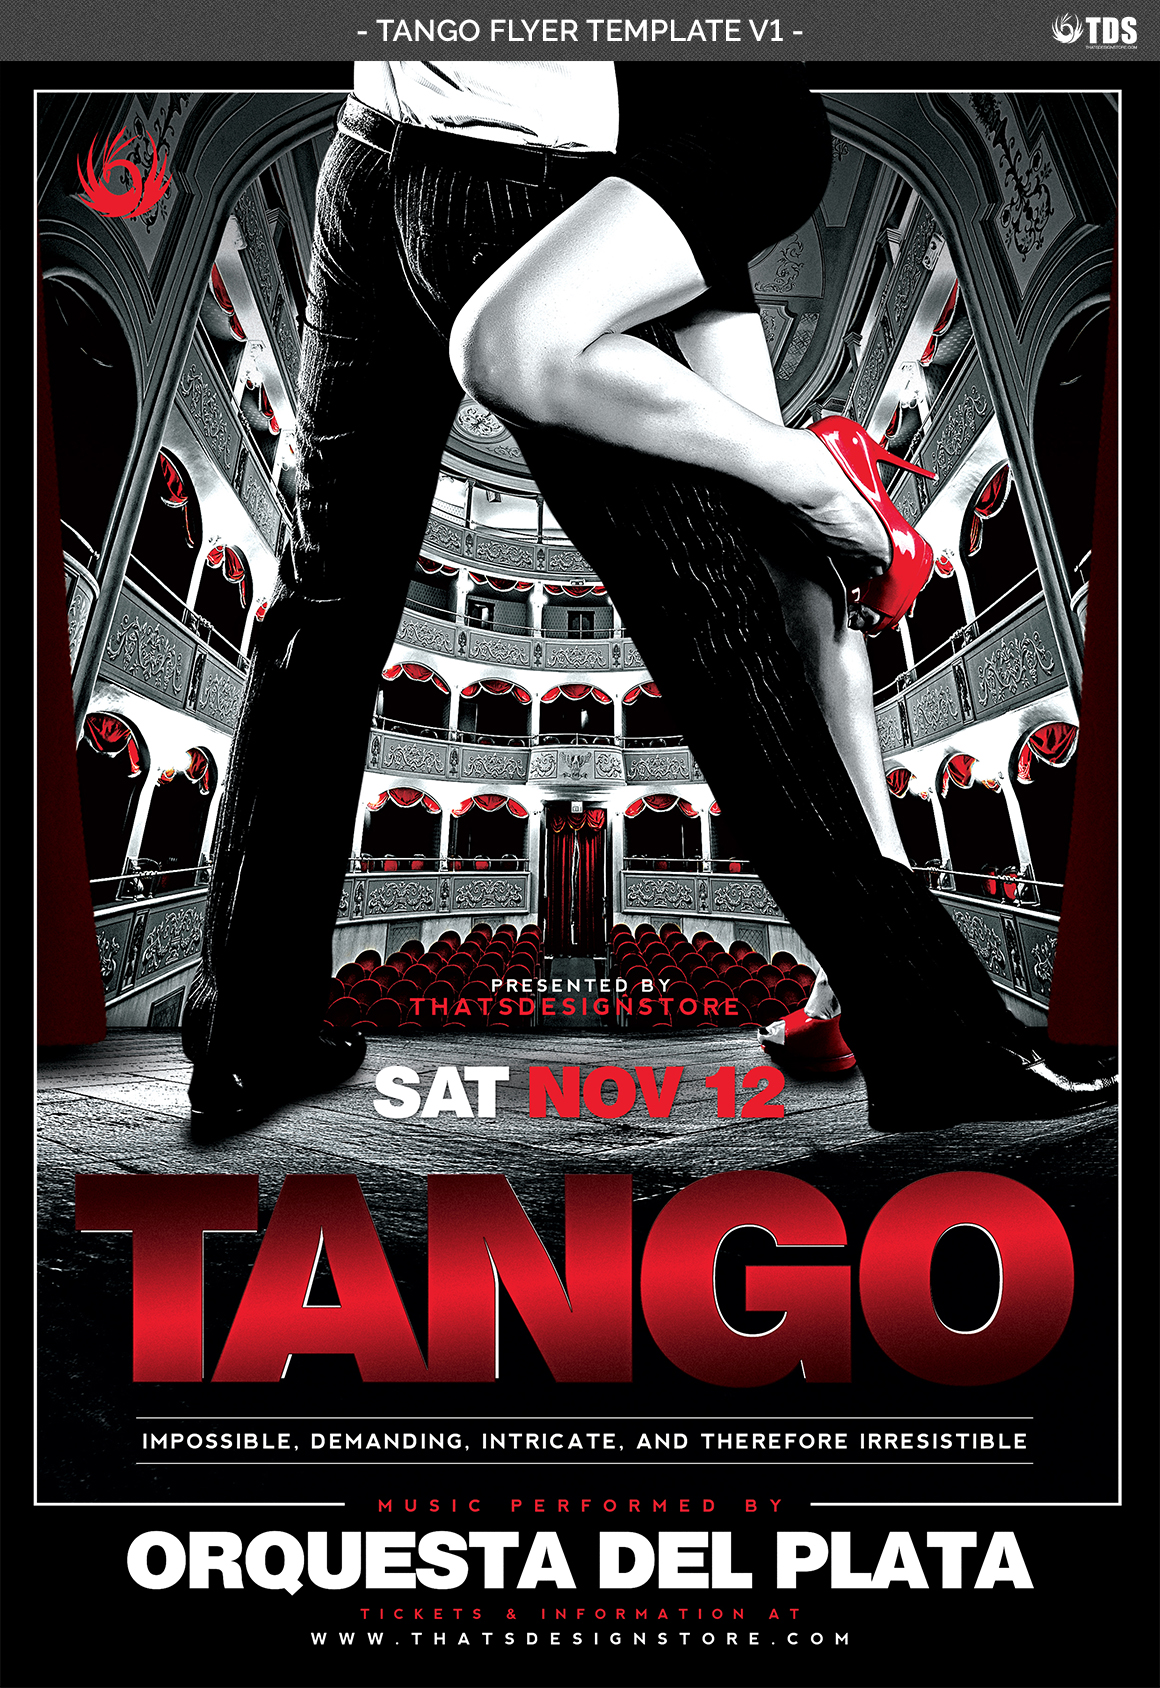 Tango Flyer Template V1 example image 4